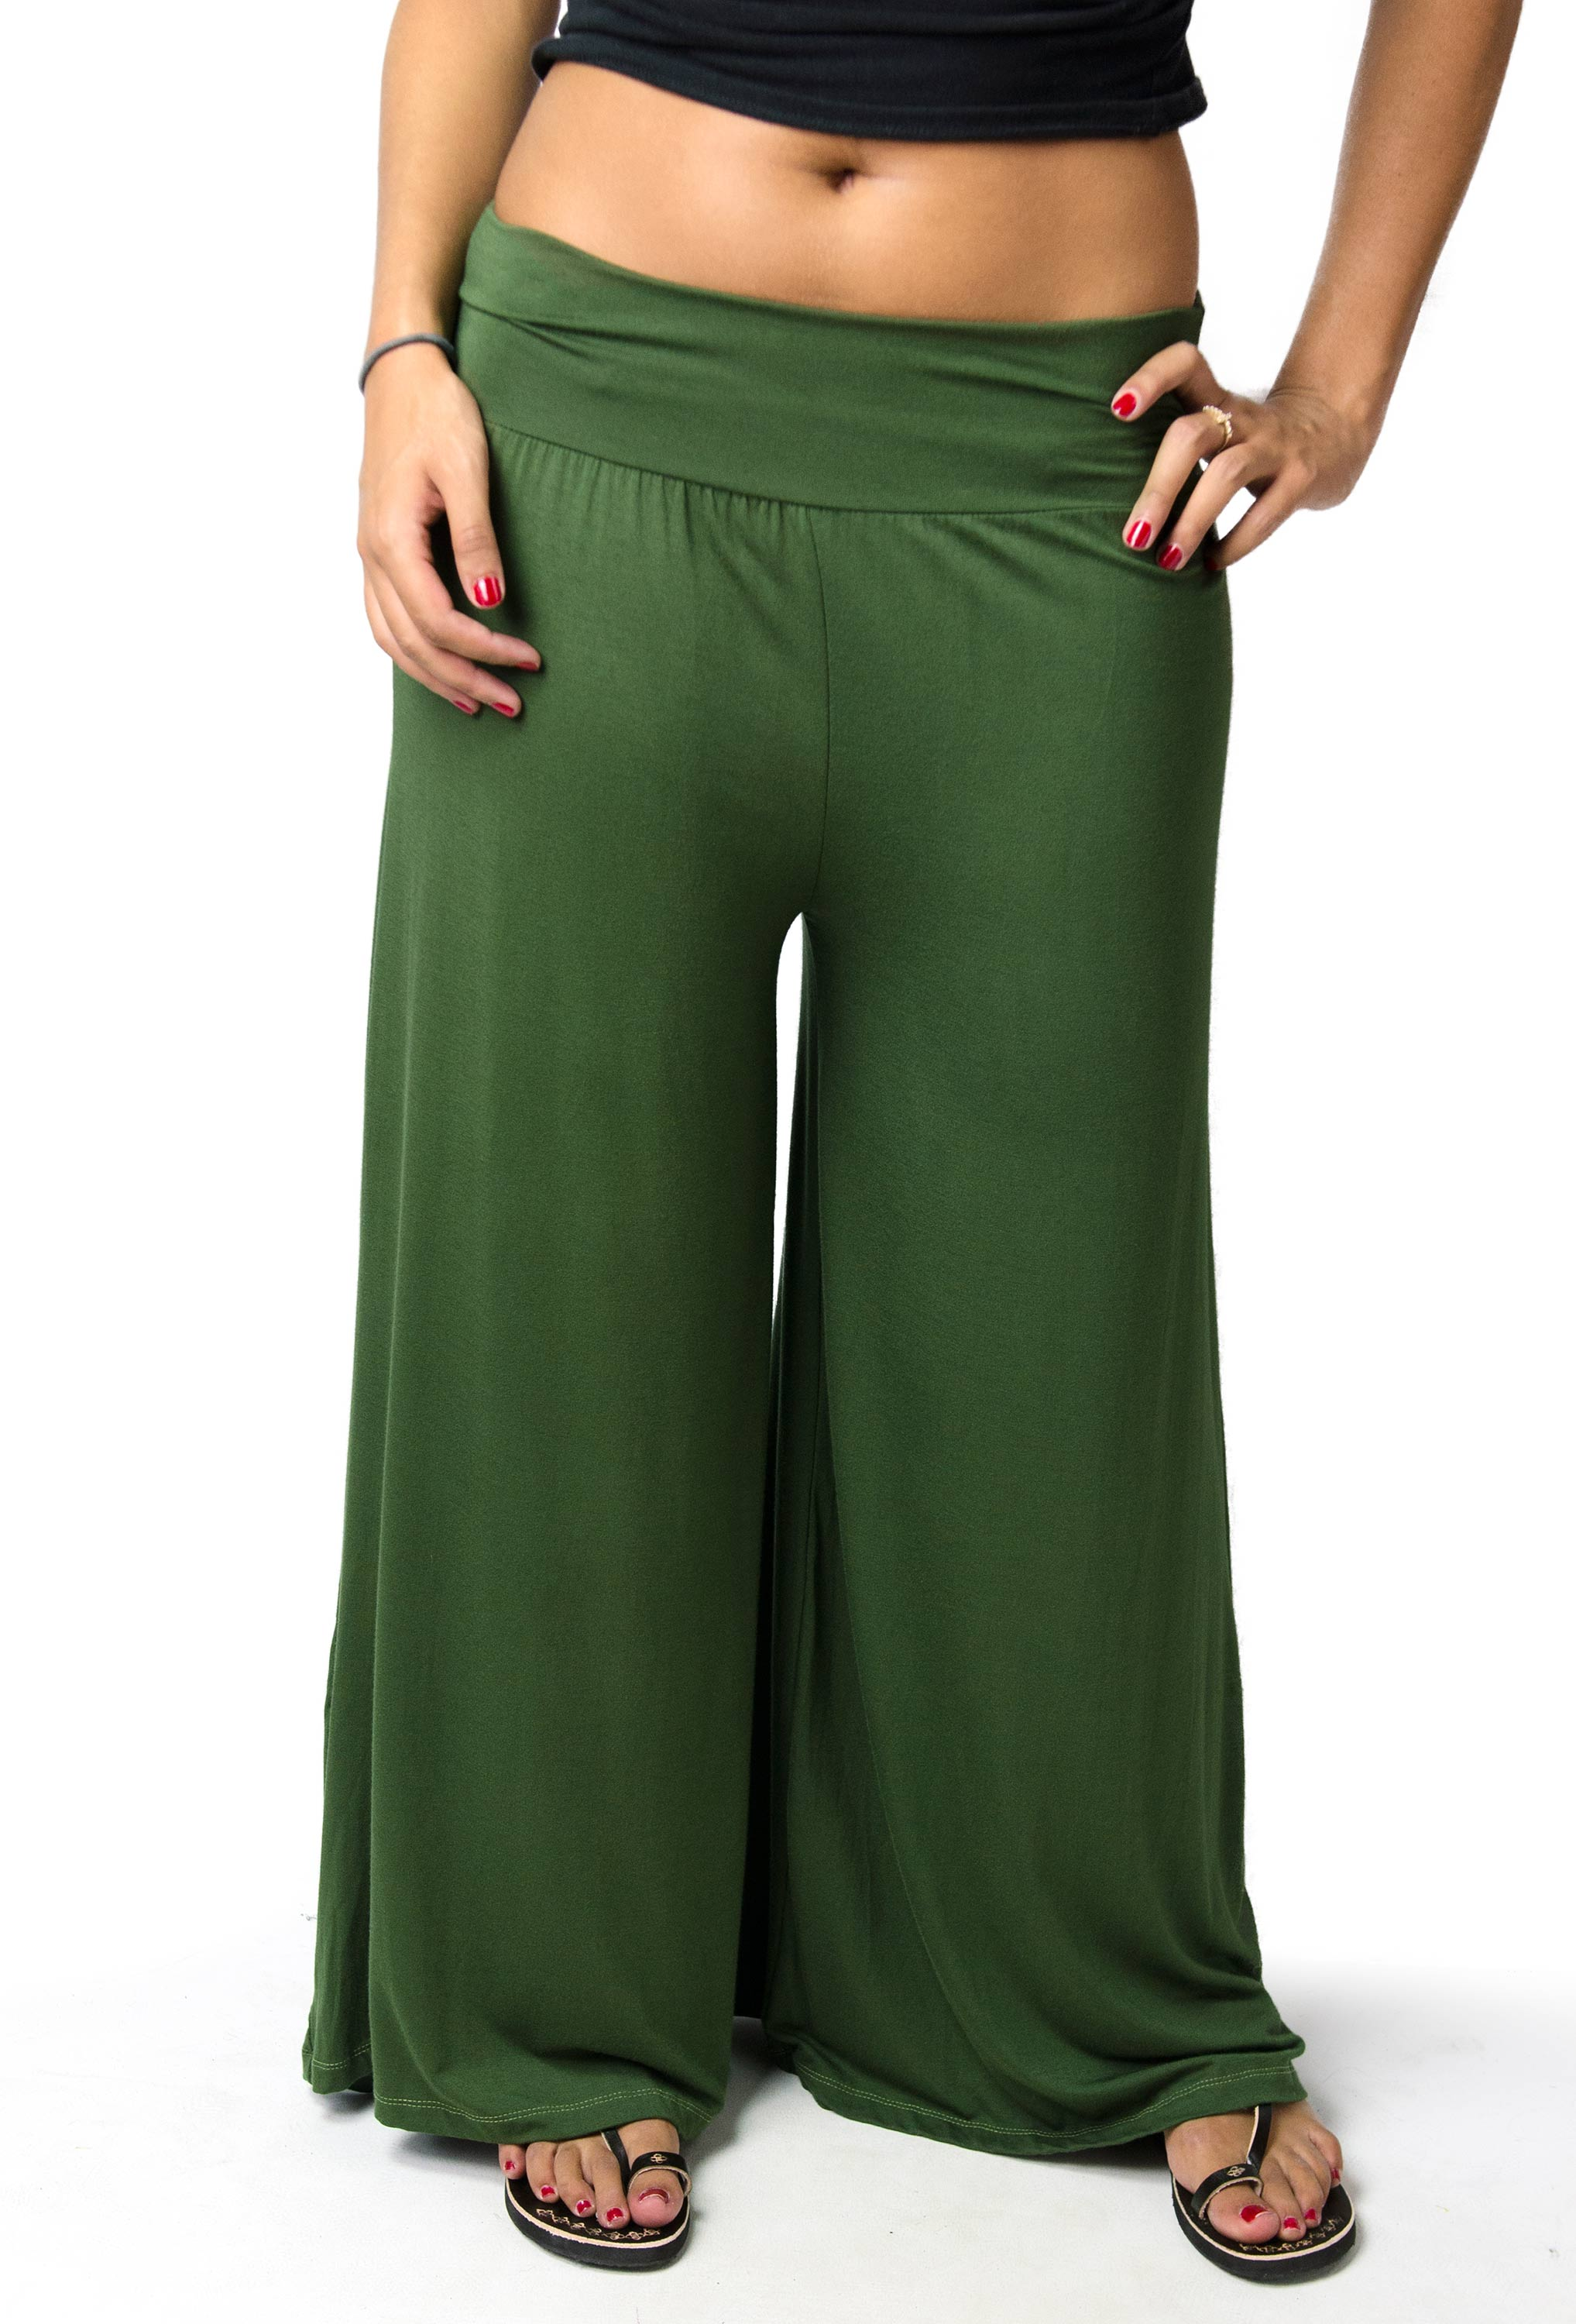 Wide Leg Pants, Solid Color, Olive - 2368-G